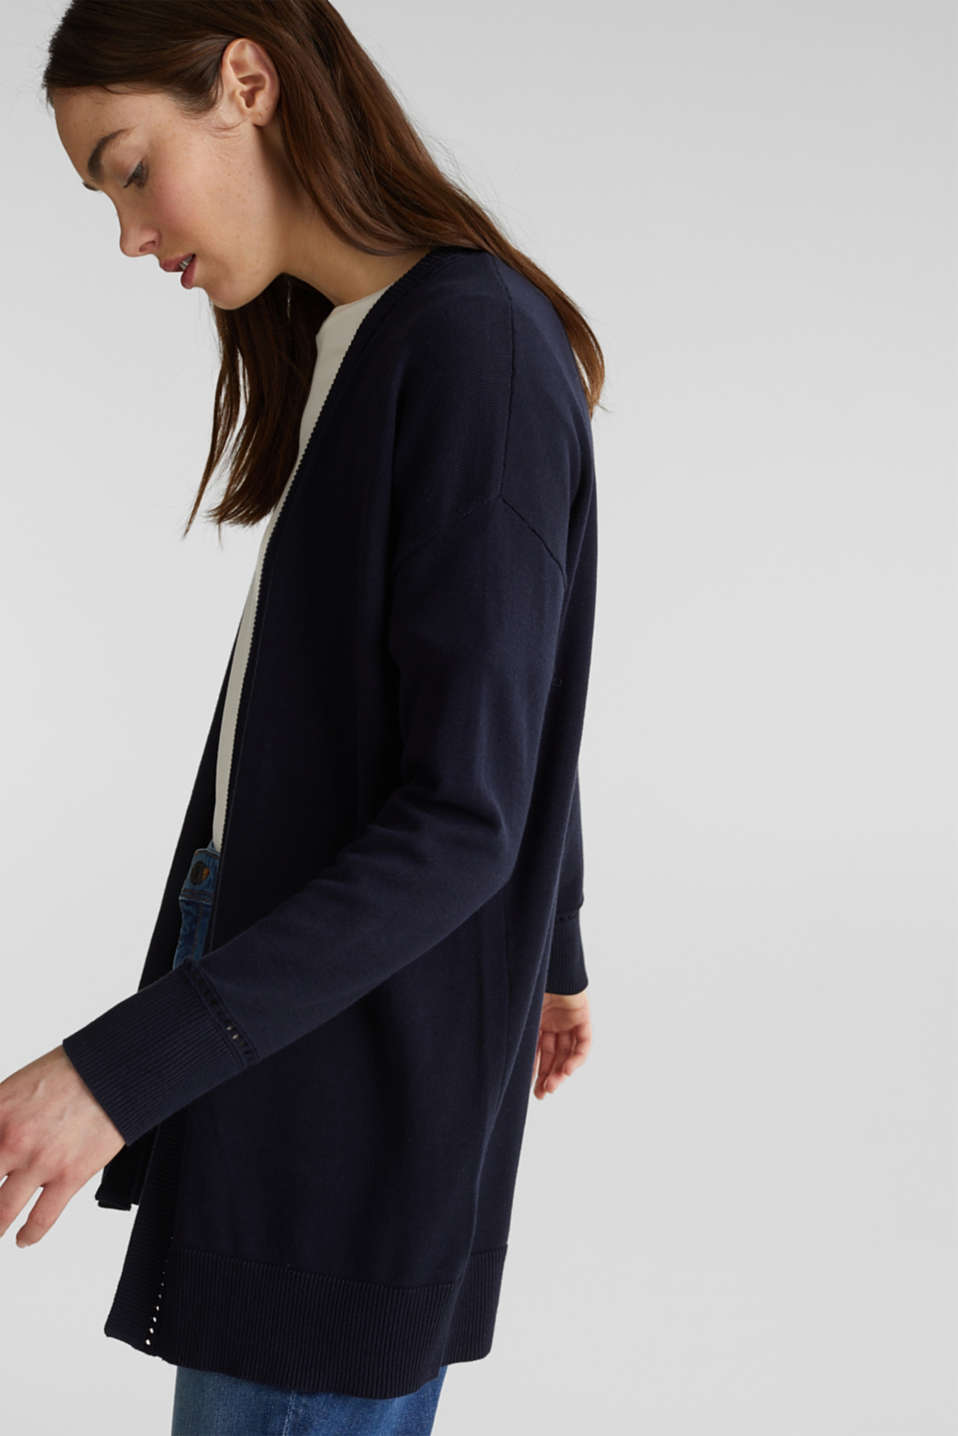 Cardigan with open-work pattern details, NAVY, detail image number 5